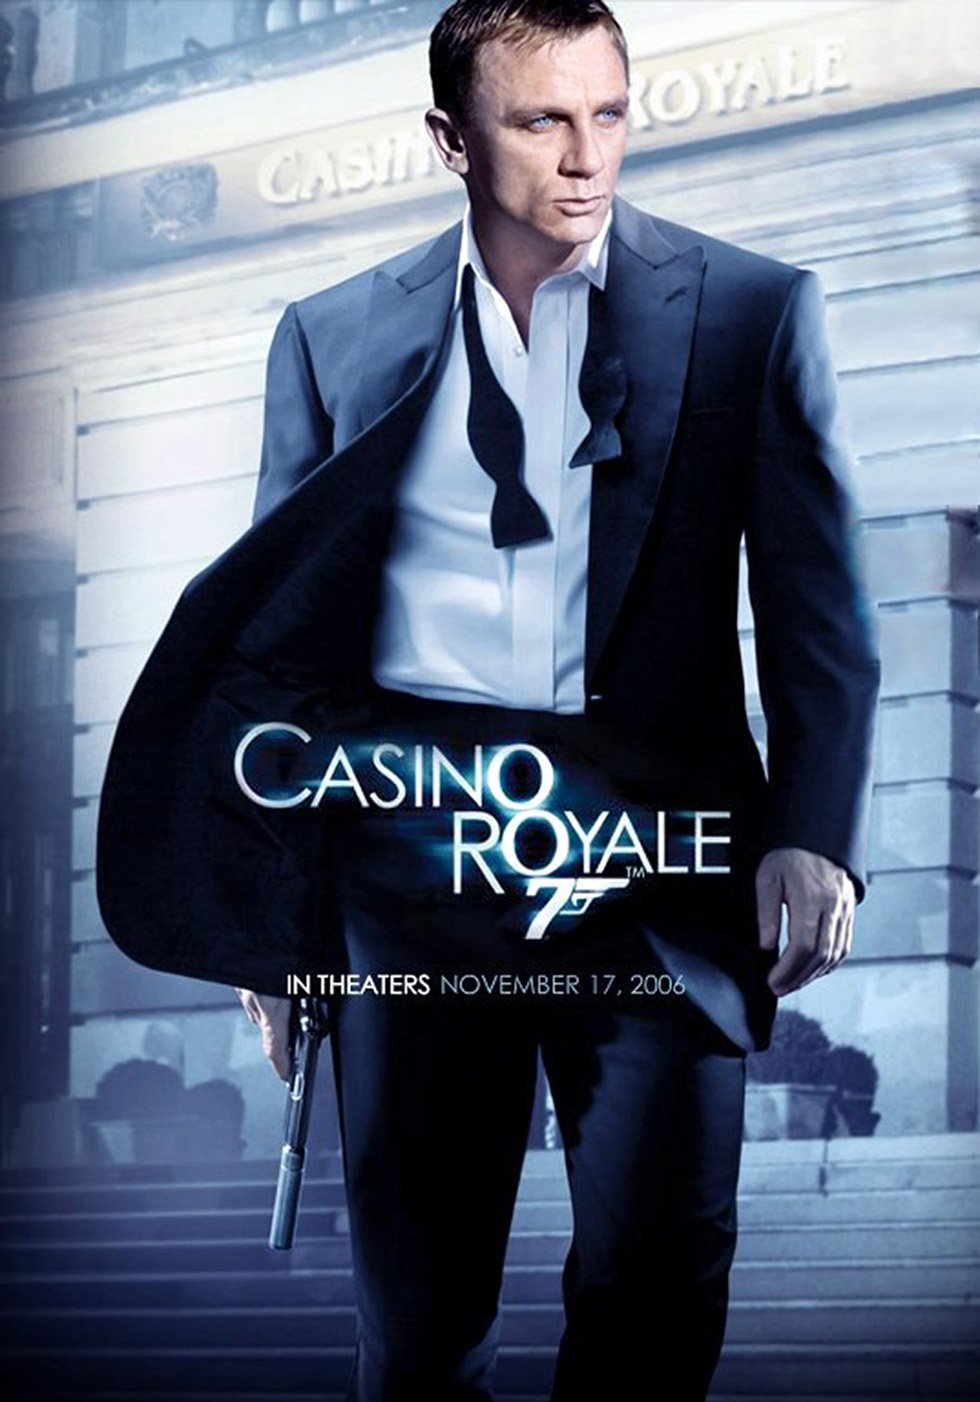 casino royale free online movie online casino